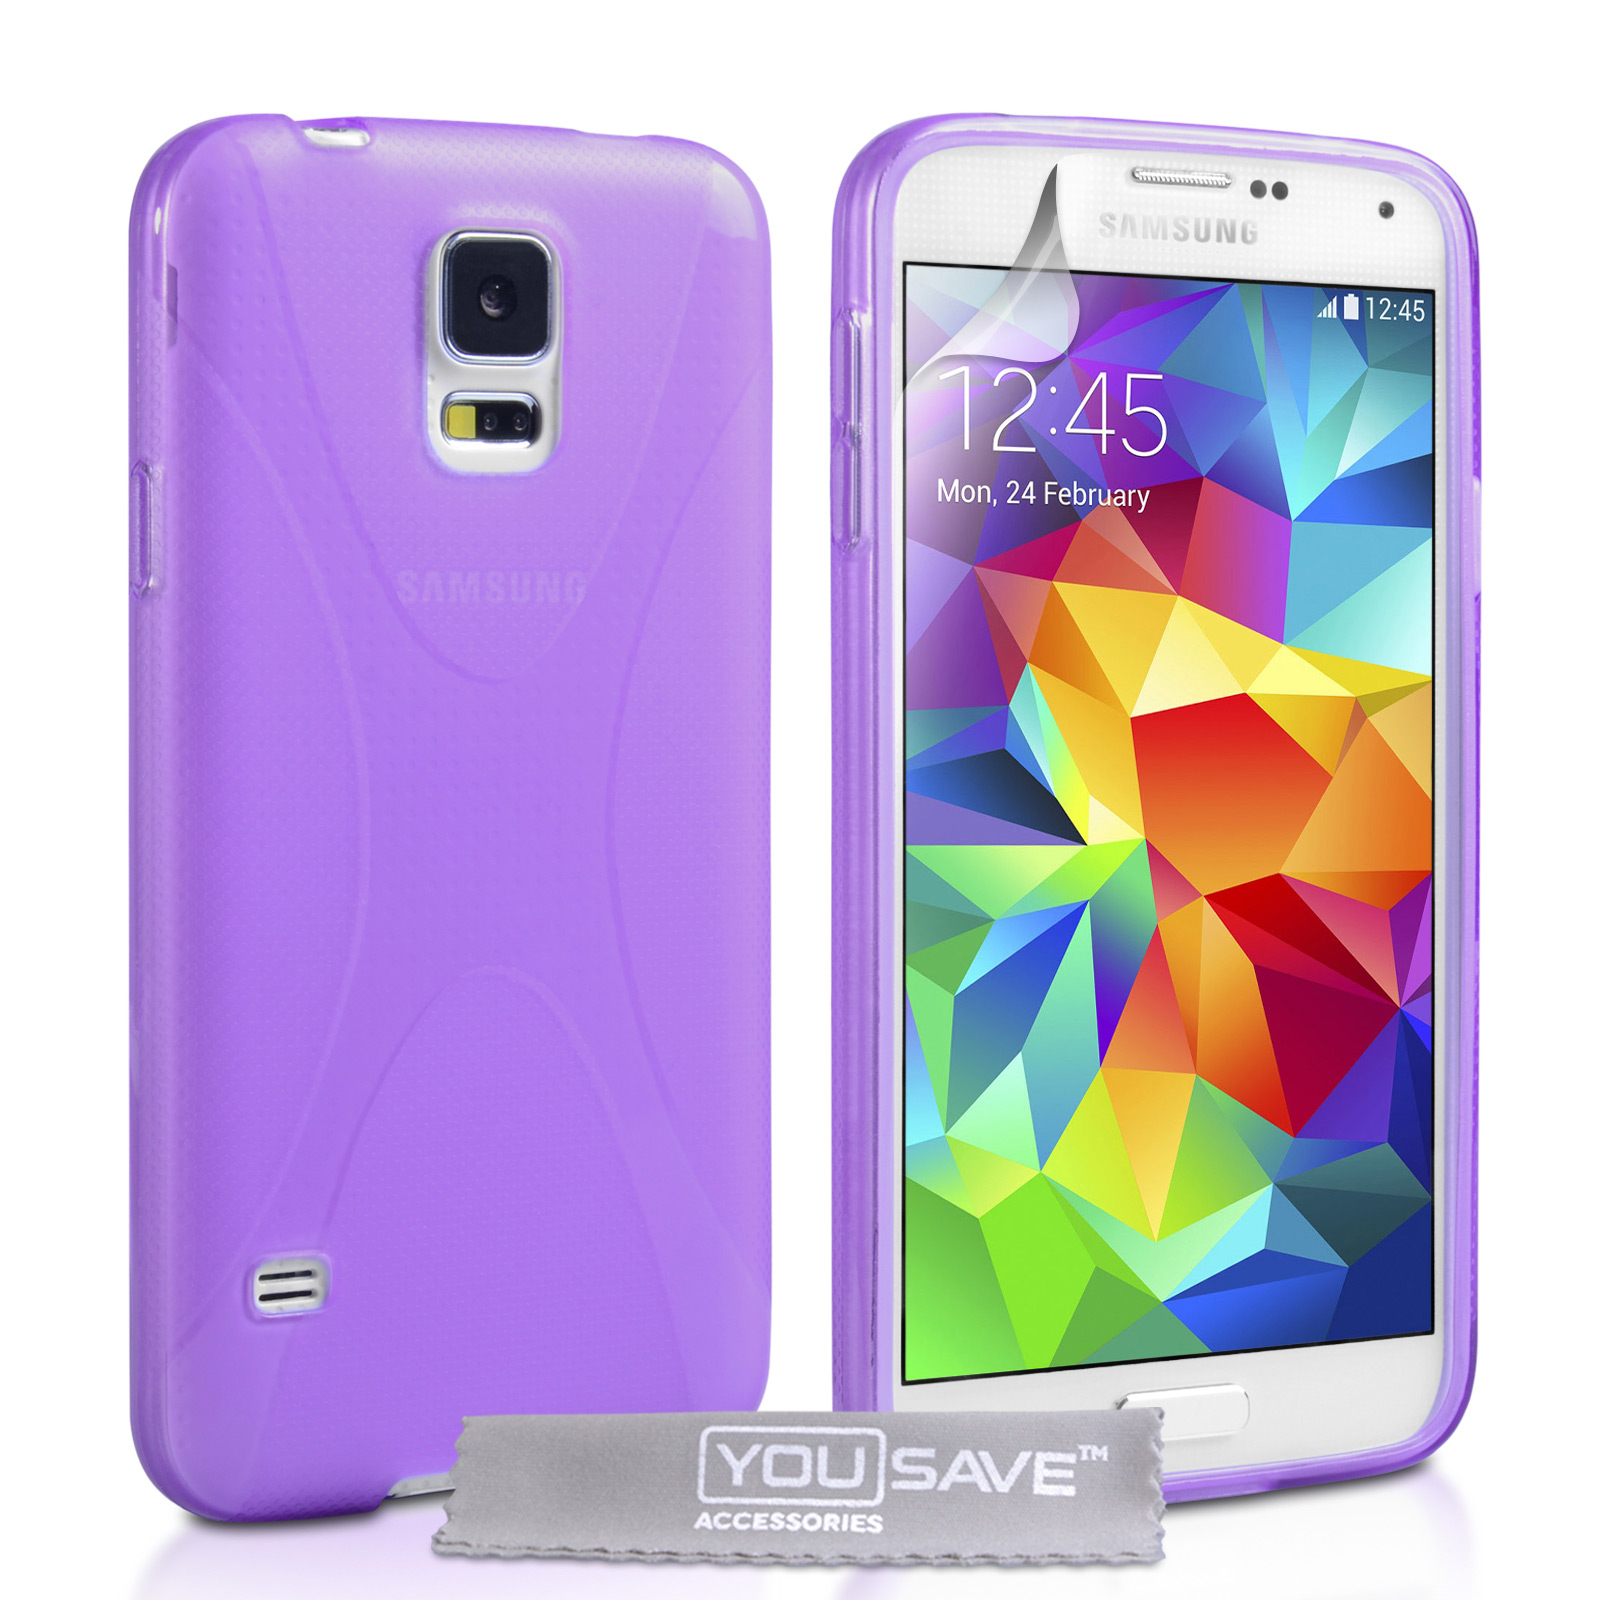 YouSave Samsung Galaxy S5 Silicone Gel X-Line Case - Purple